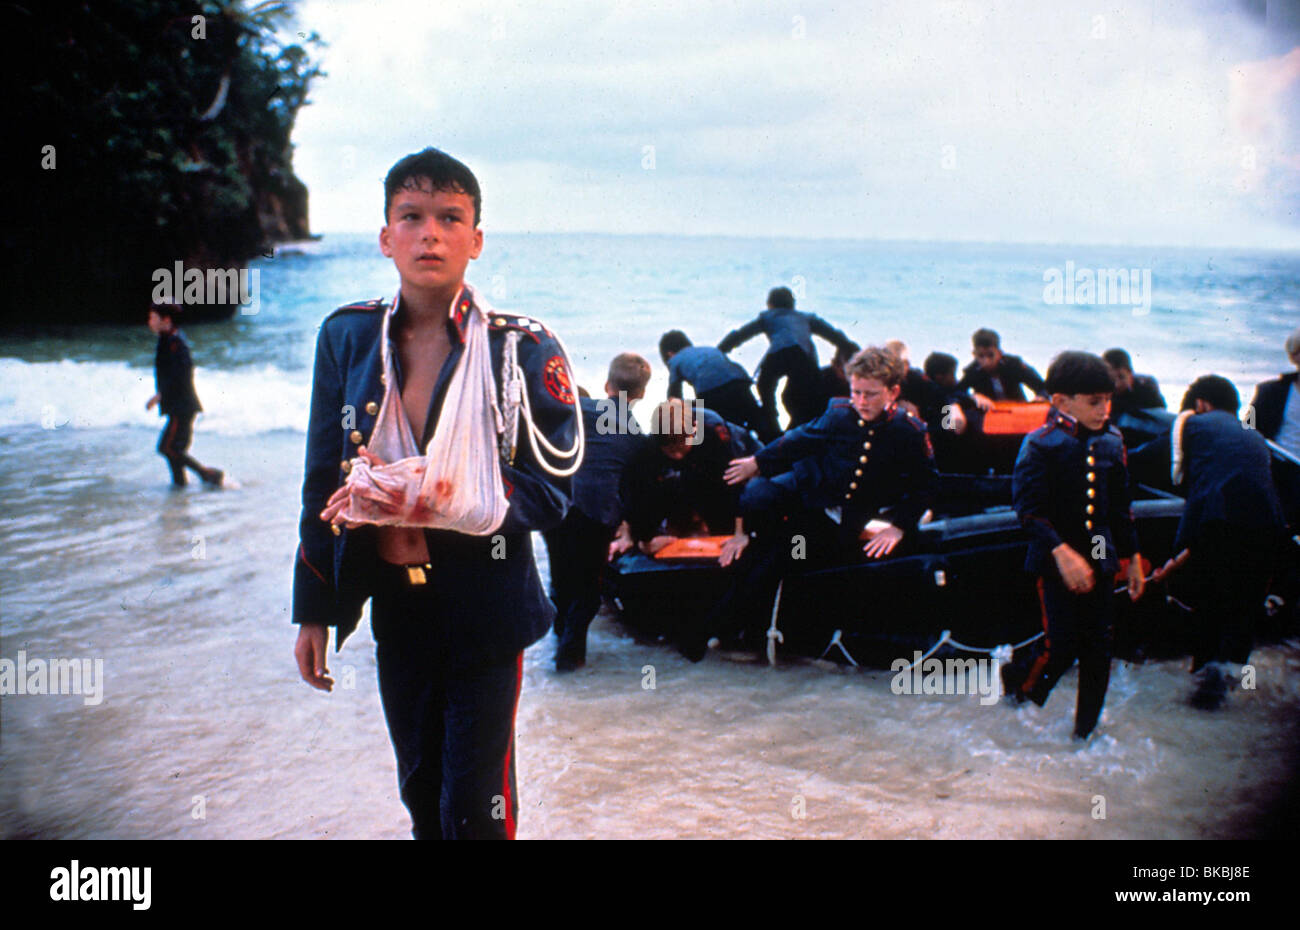 LORD OF THE FLIES (1990) BALTHAZAR GETTY LOF 020 - Stock Image